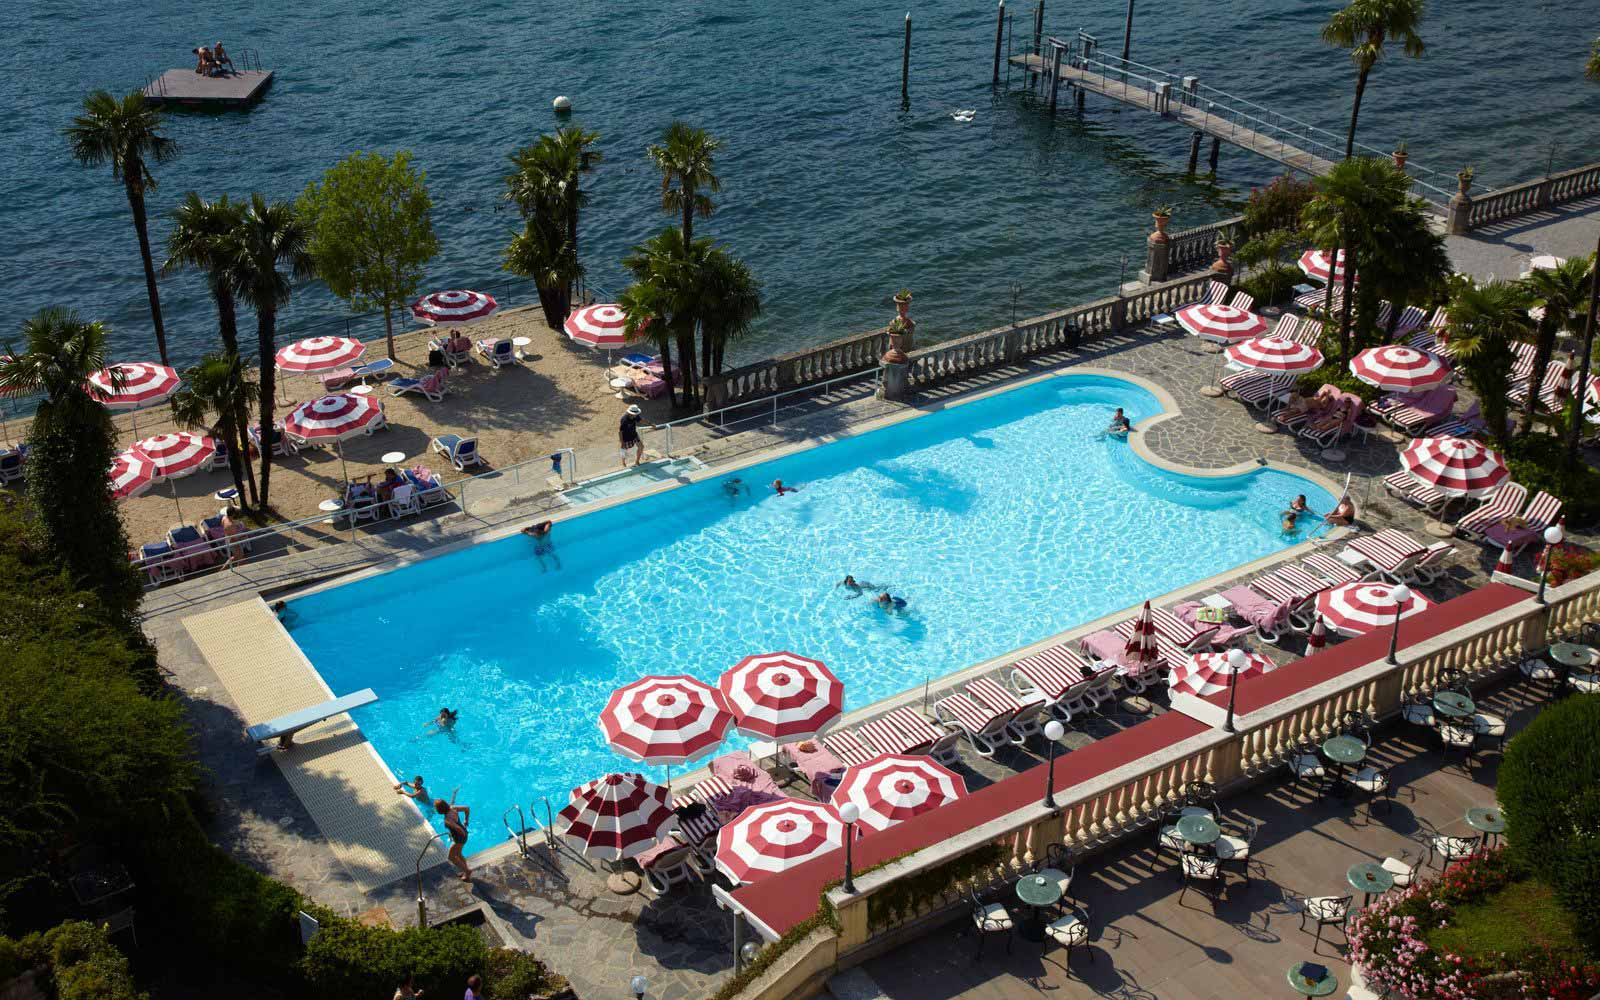 Swimming pool overlooking Lake Como at Grand Hotel Villa Serbelloni